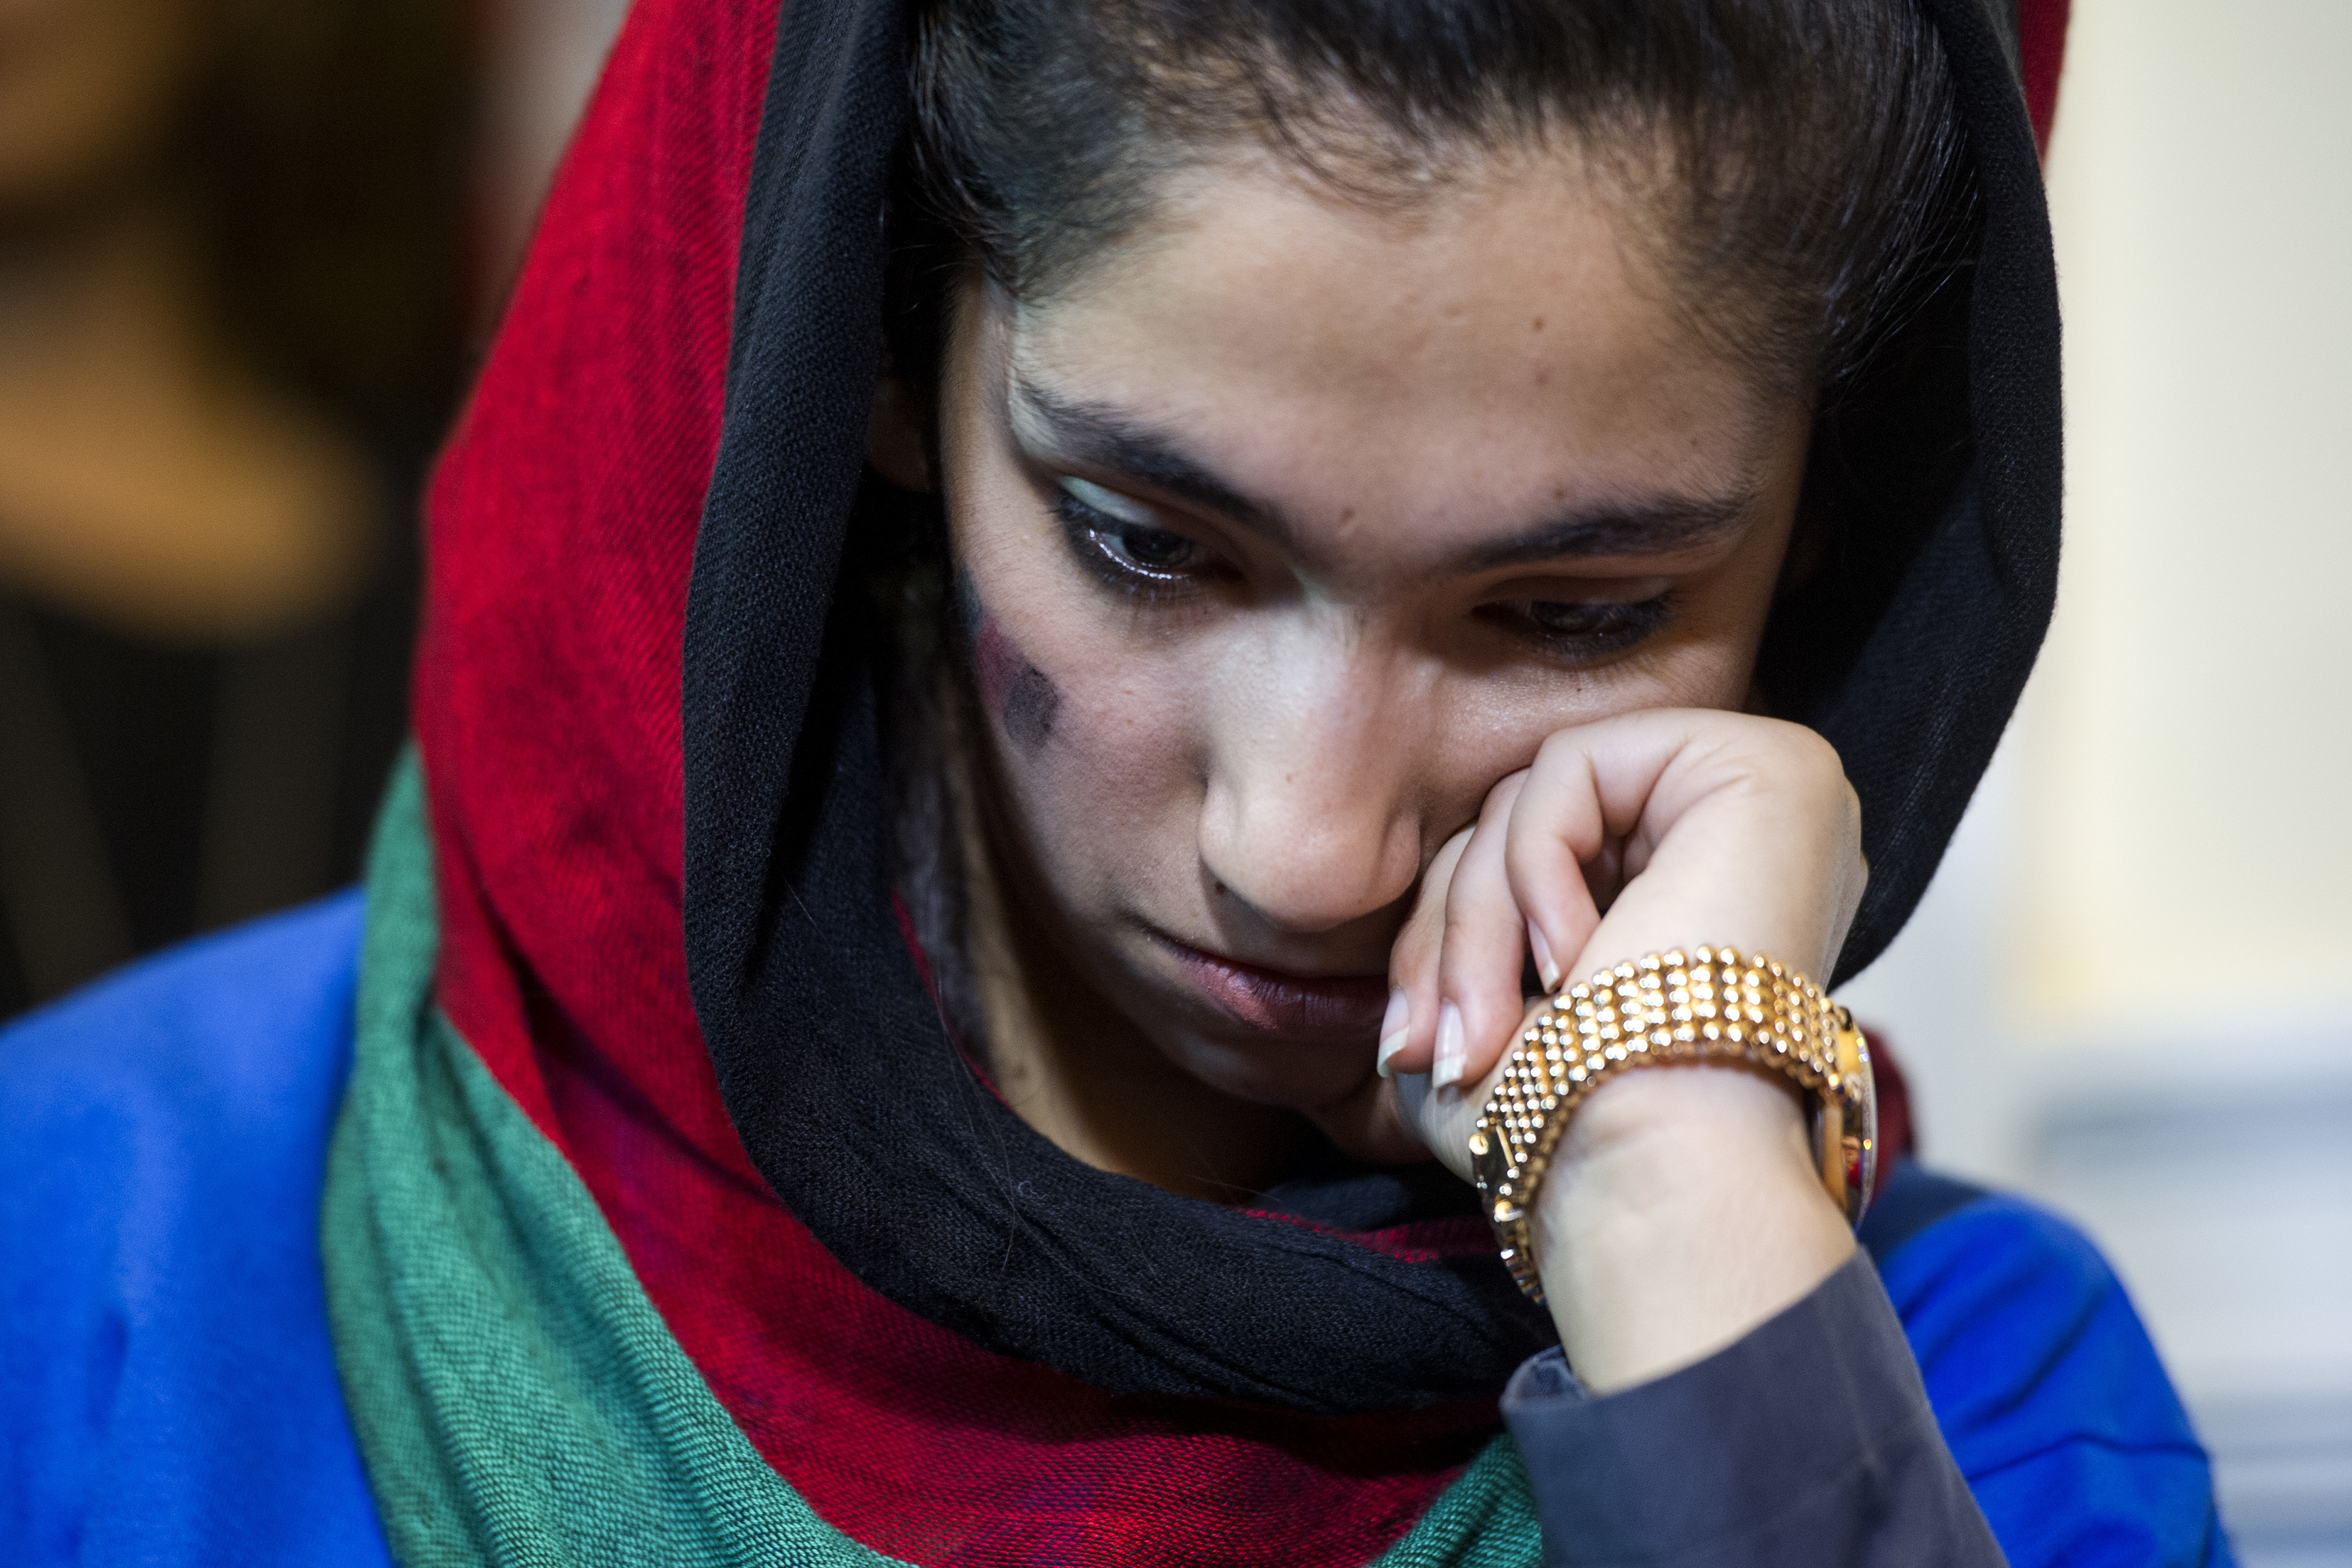 Afghanistan's FIRST Global Challenge team member Yasimin Yasinzadah meets with reporters following the opening ceremony in Washington, Sunday, July 16, 2017. (AP Photo/Cliff Owen)